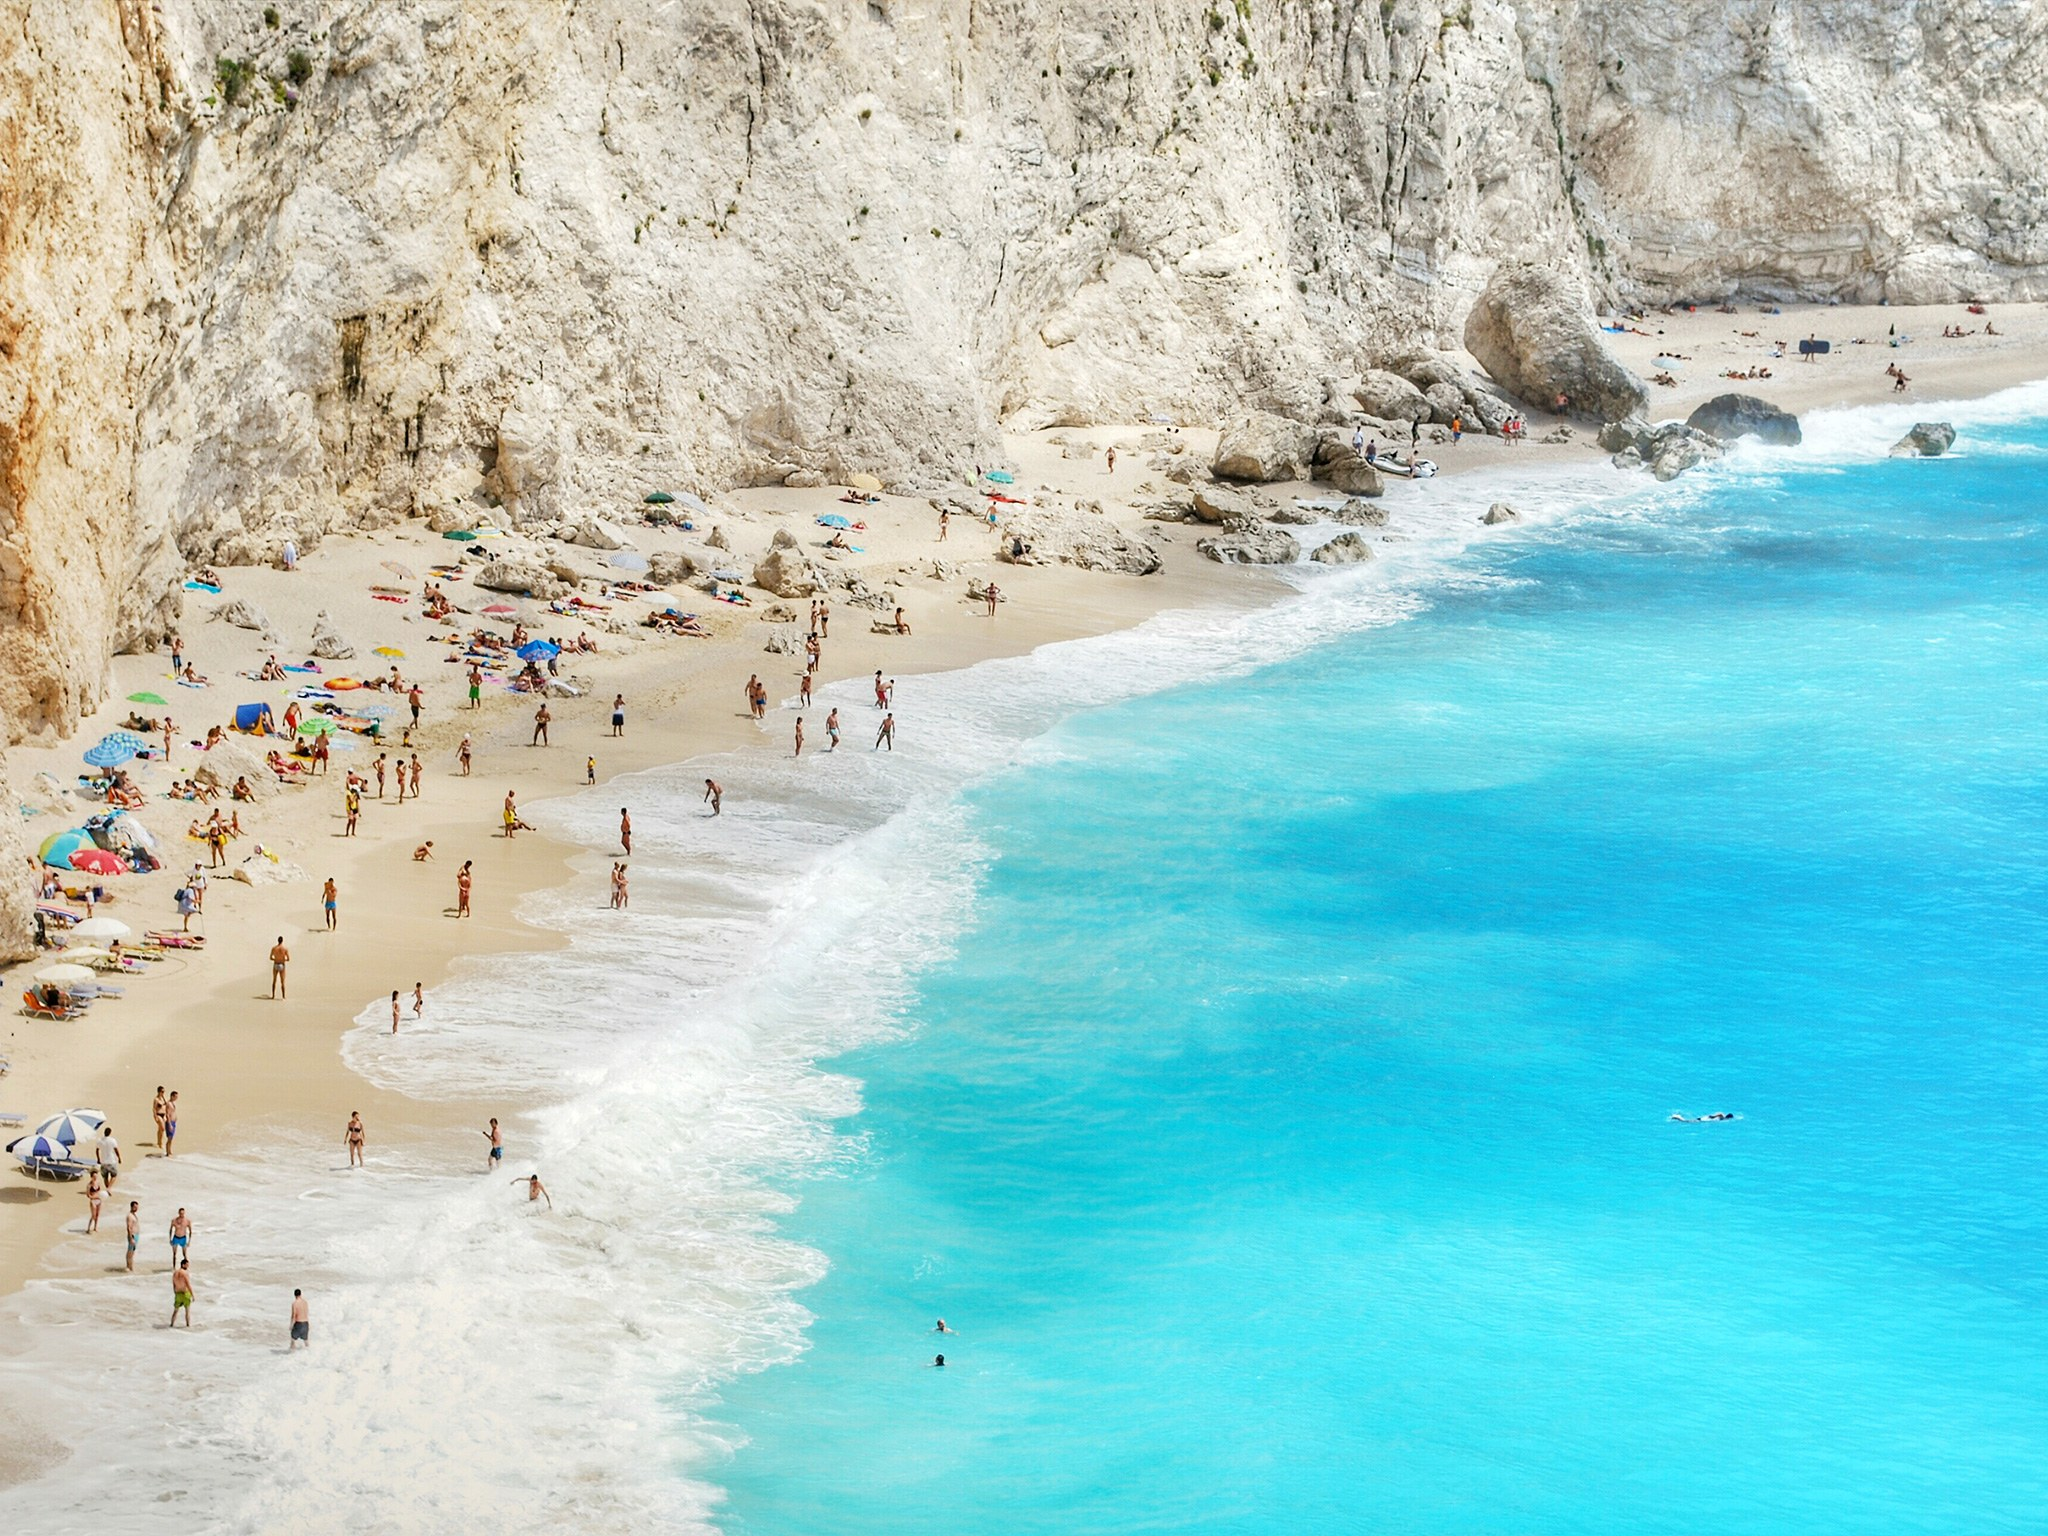 porto-katsiki-lefkas-greece-cr-getty